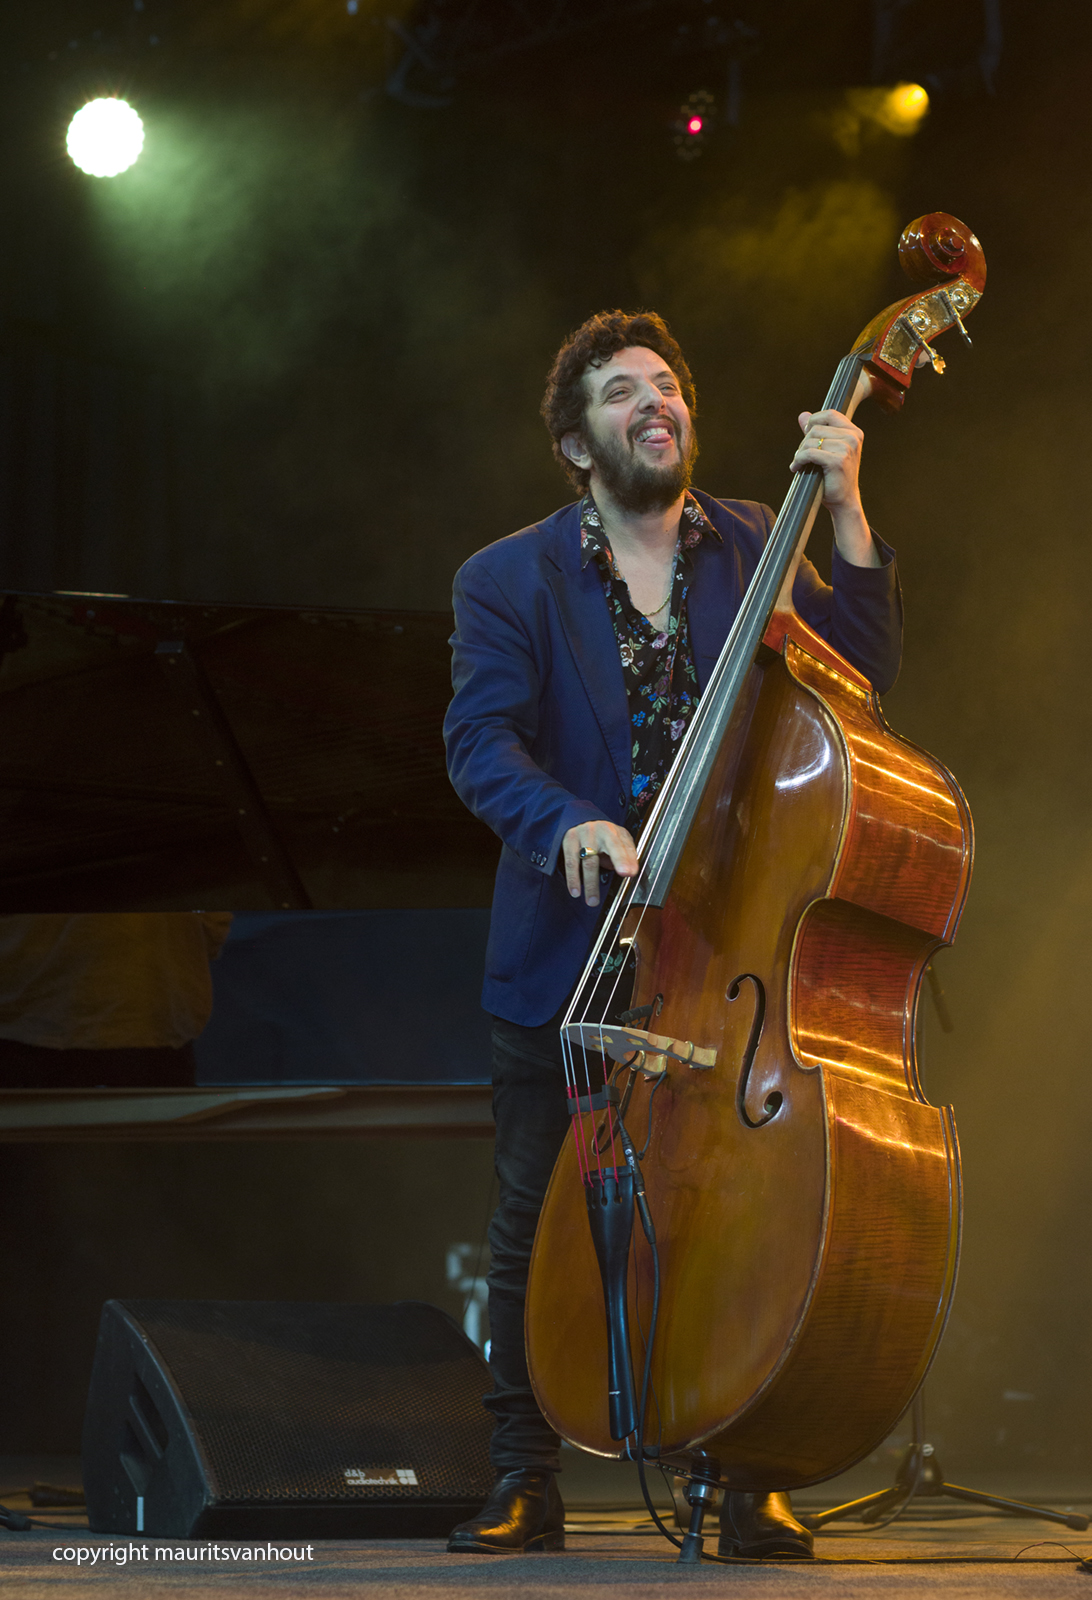 Omer Avital, live at Gent Jazz